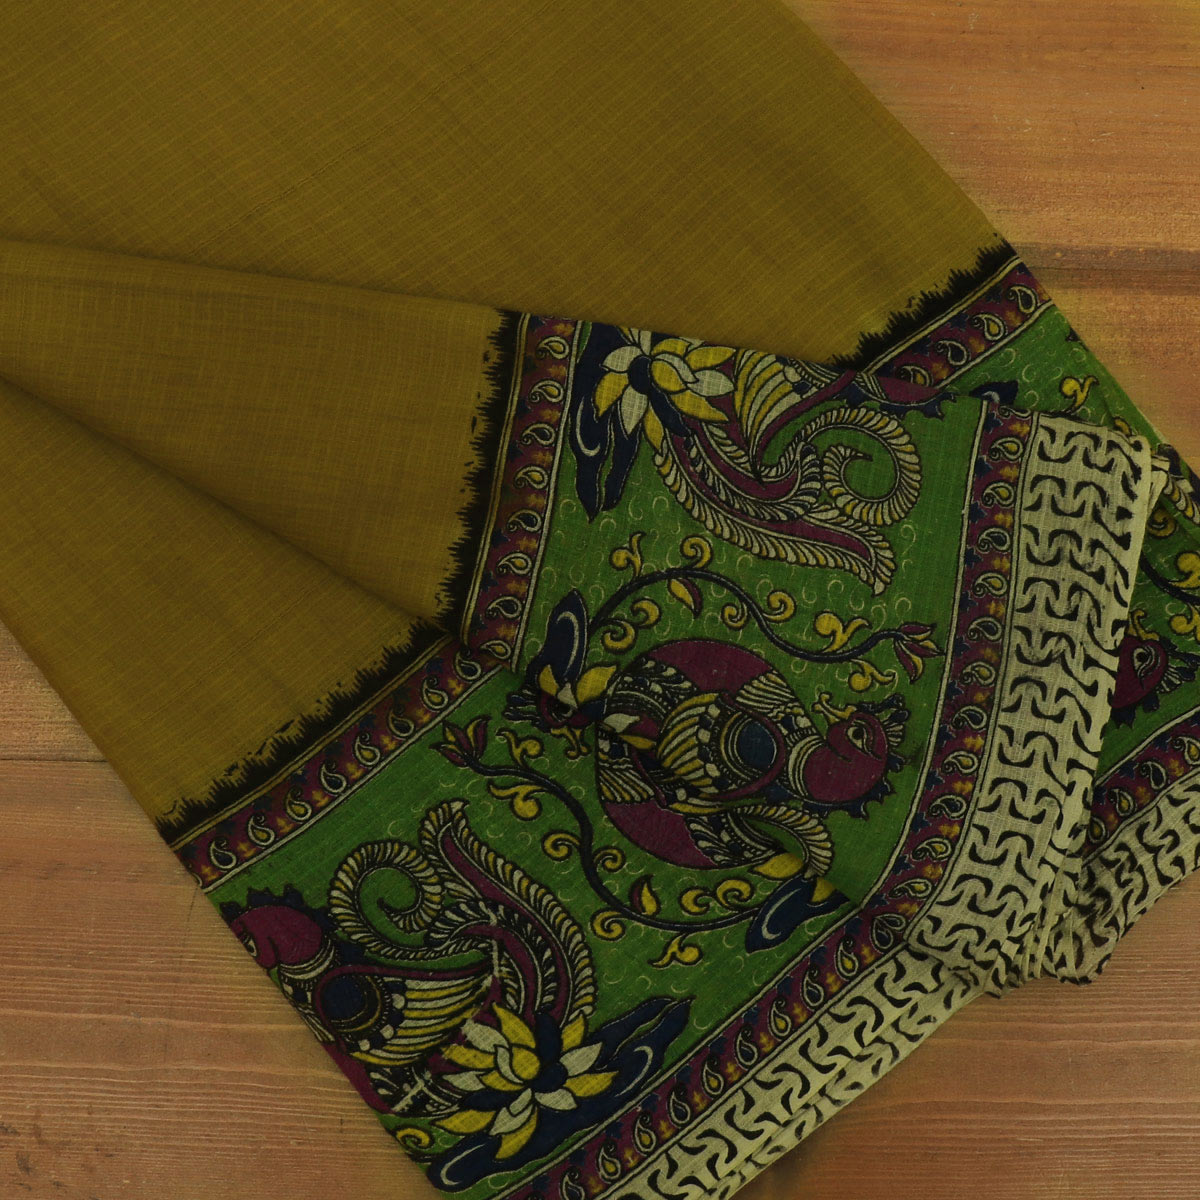 Kotta kalamkari Cotton Saree Dark Green and Green with Annam border